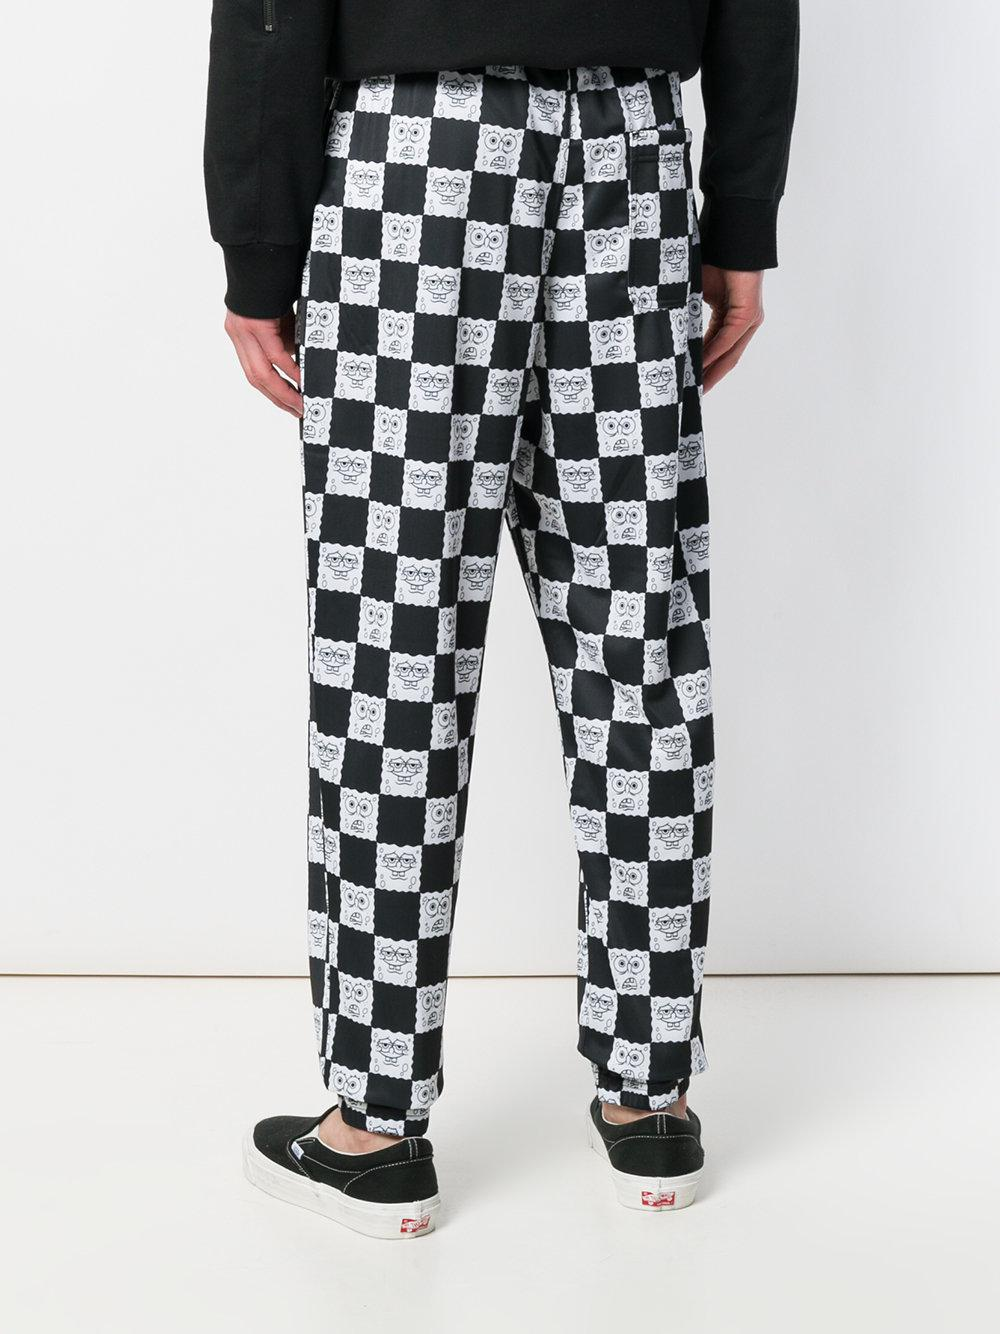 Vans Spongebob Checked Trousers in Black for Men